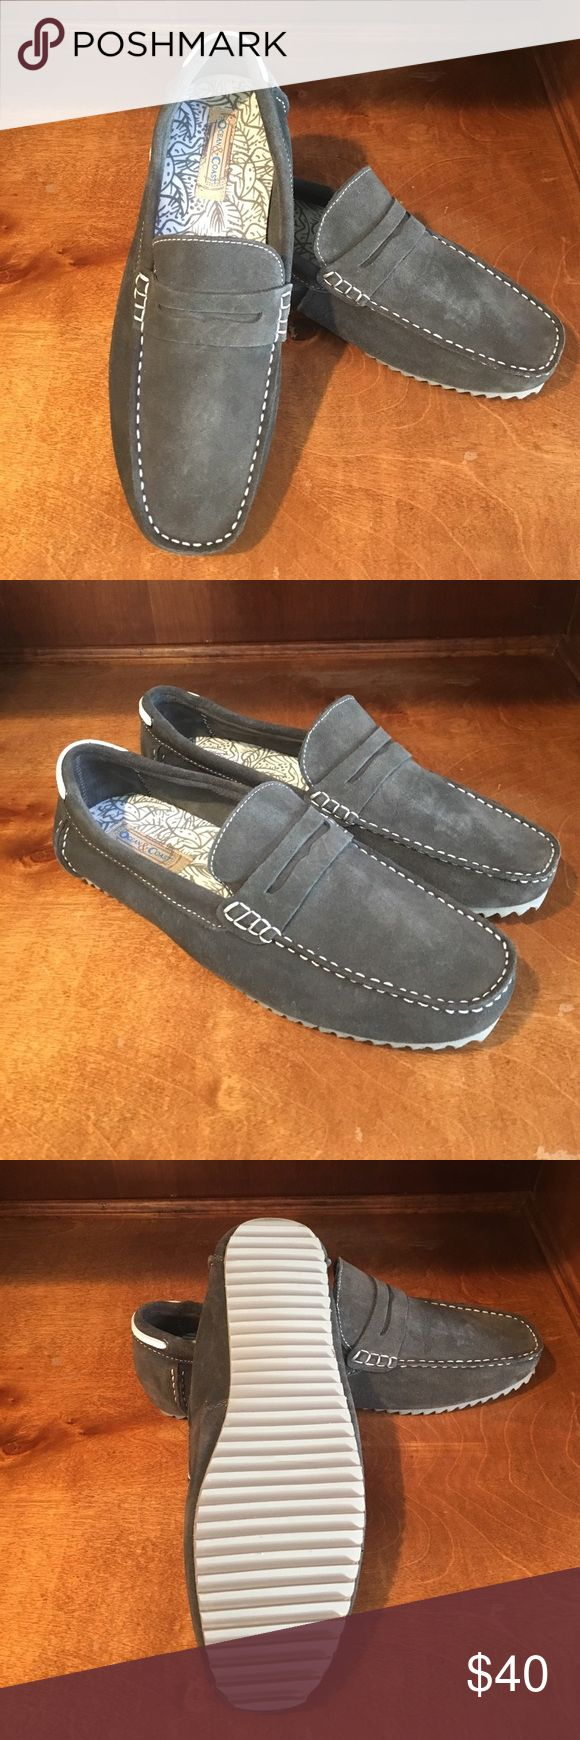 Ocean & Coast Casual Loafers Soft gray suede casual loafers size 10.5. Never worn. Great spring/summer shoes! Does not come with shoe box. ocean & coast  Shoes Loafers & Slip-Ons